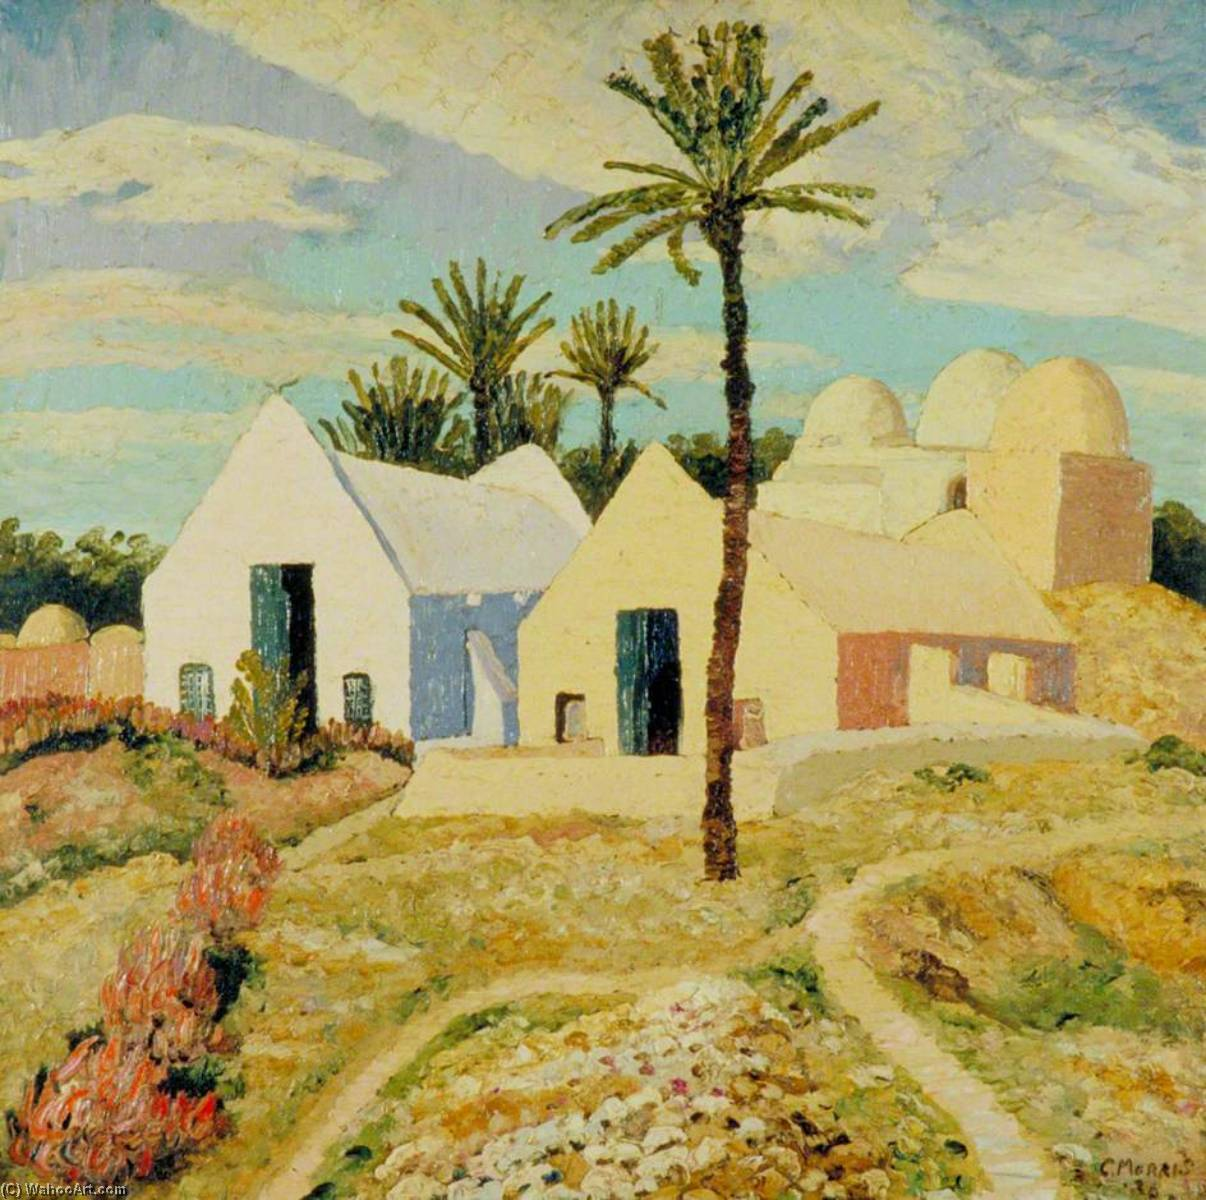 Atelier Tapisseries, Djerba, Tunisia, 1926 by Cedric Lockwood Morris (1889-1982, United Kingdom) | Famous Paintings Reproductions | WahooArt.com